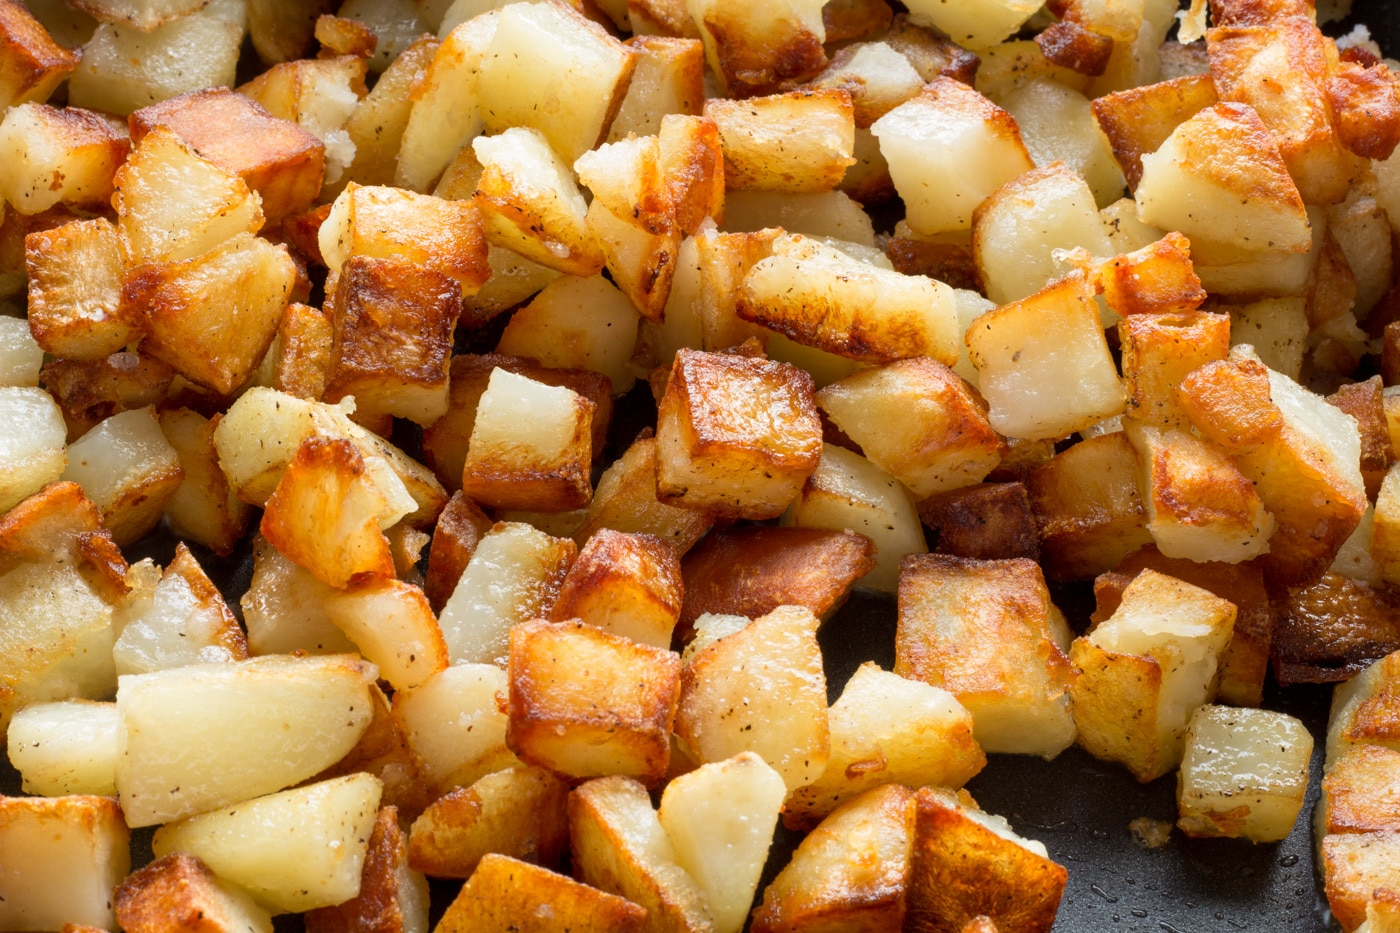 Fried diced potatoes in an electric skillet